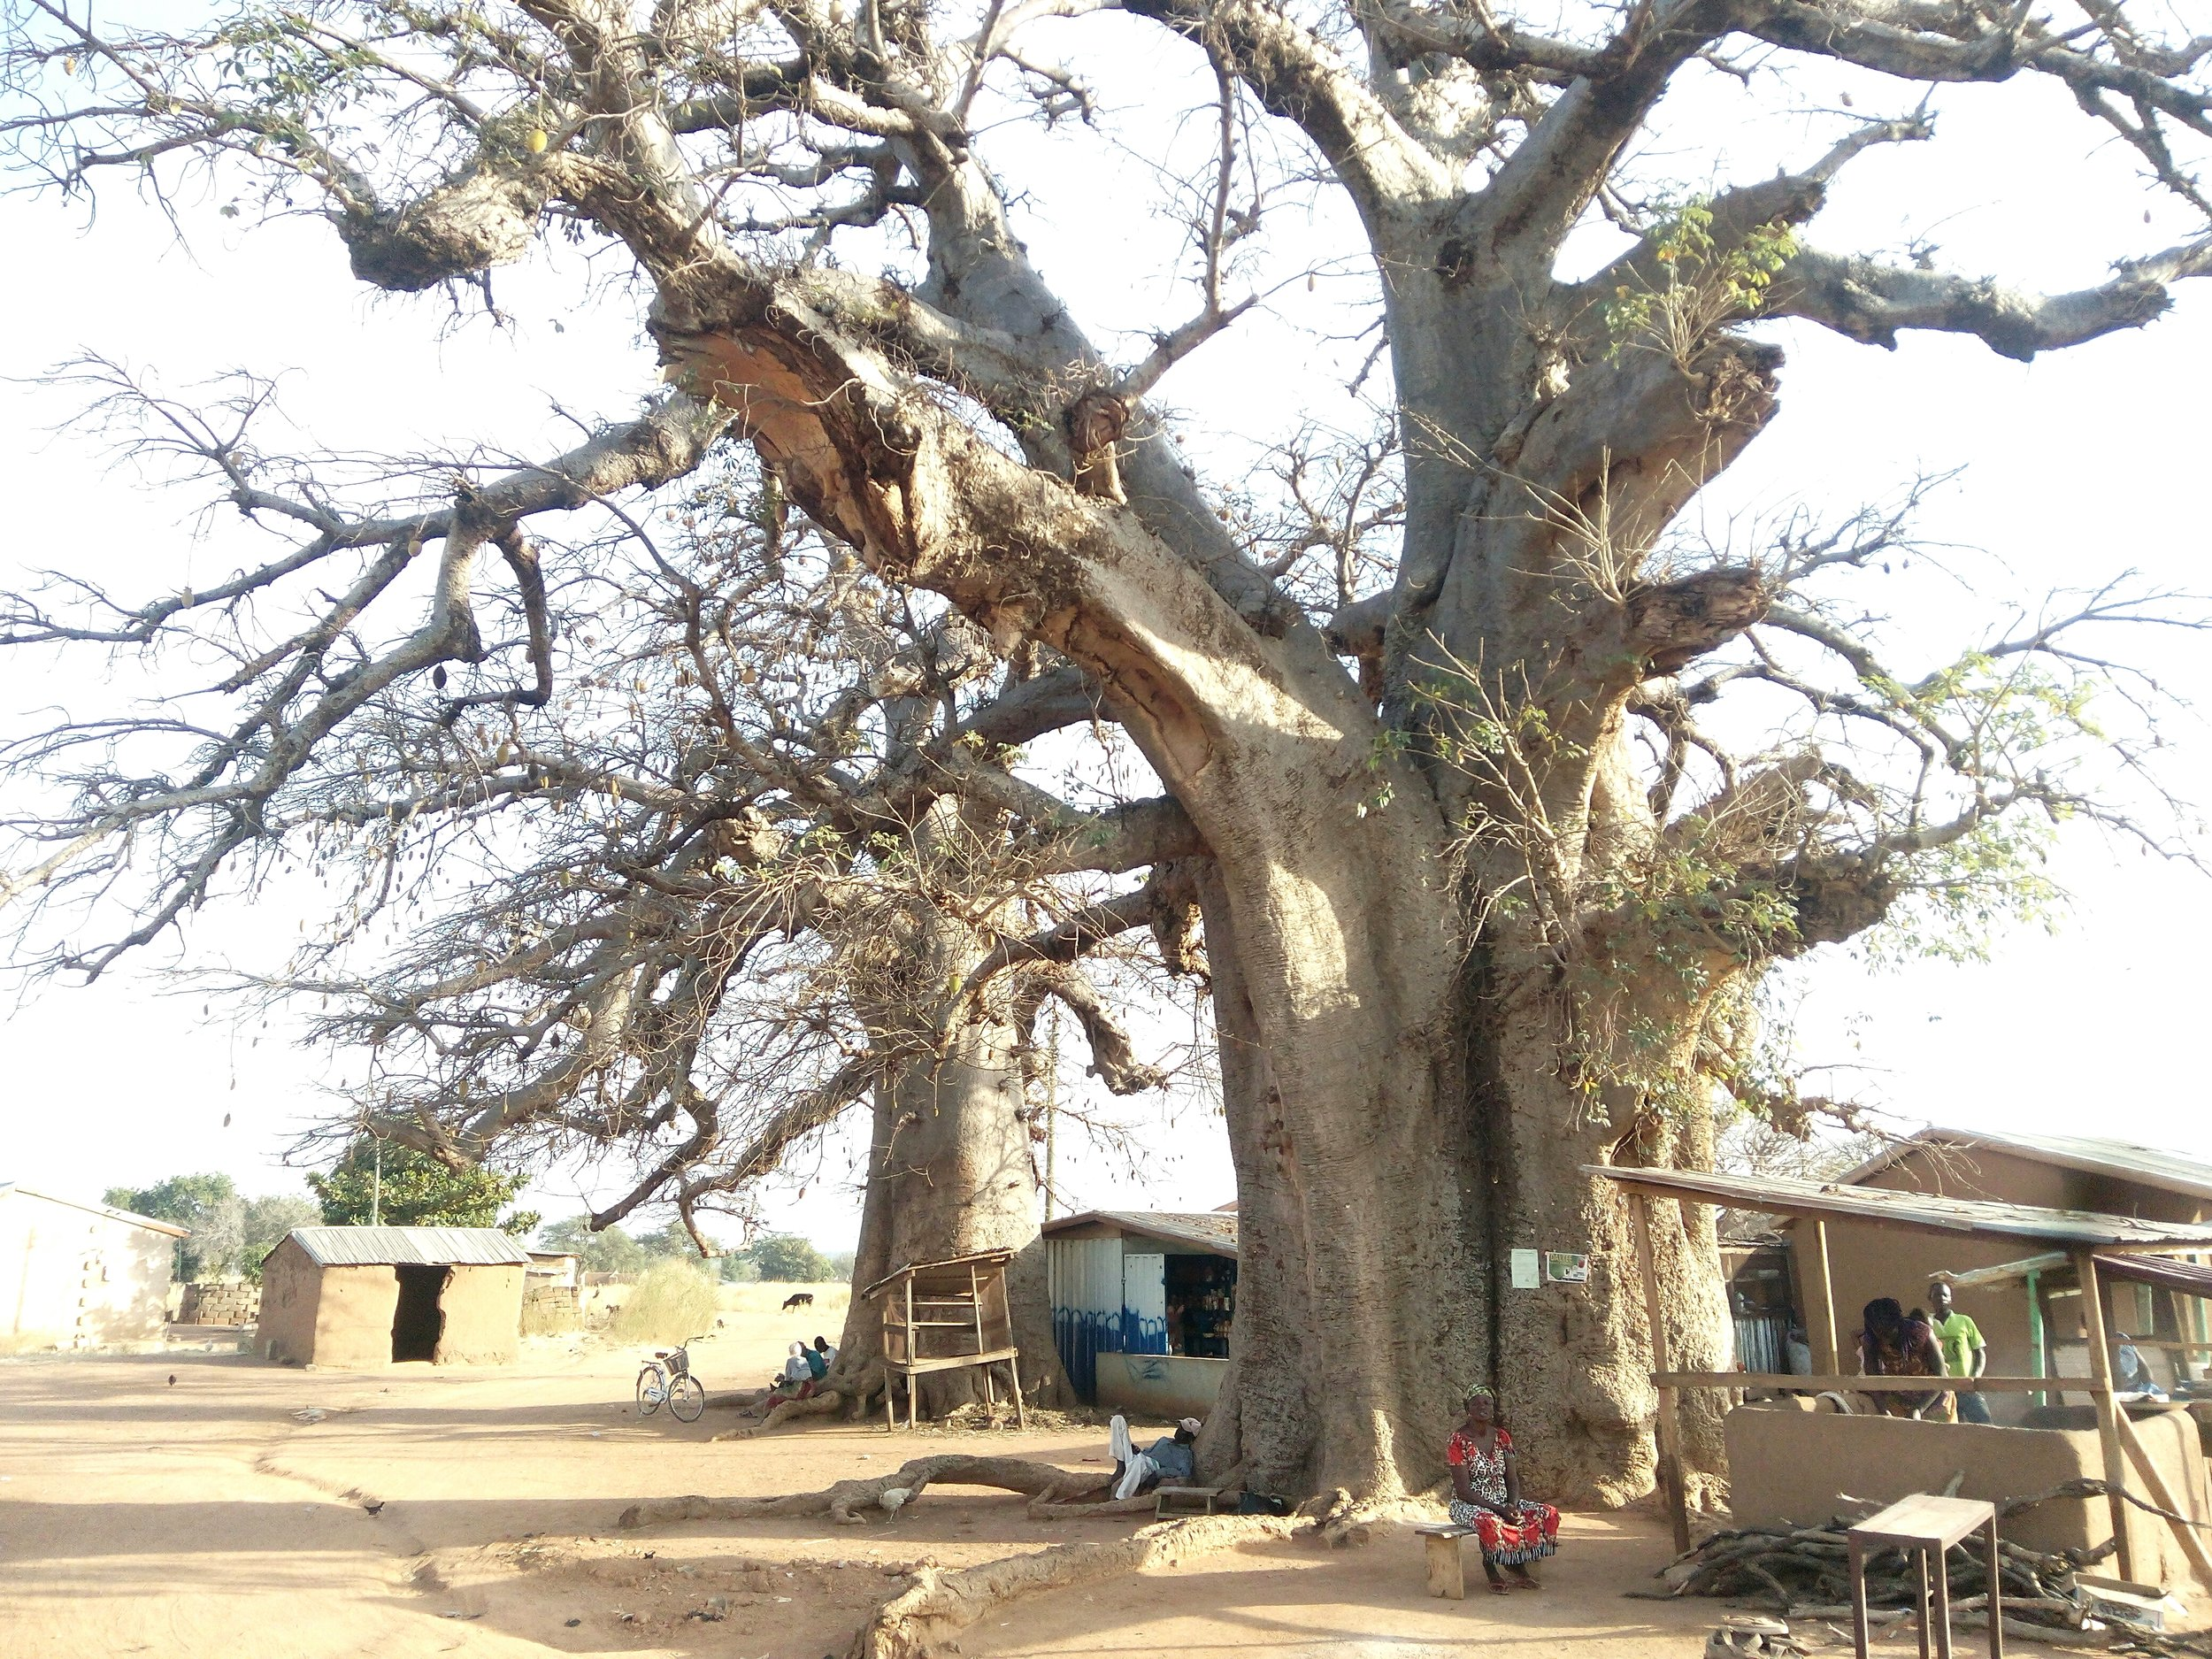 A community market under the shade of 2 sprawling baobabs.